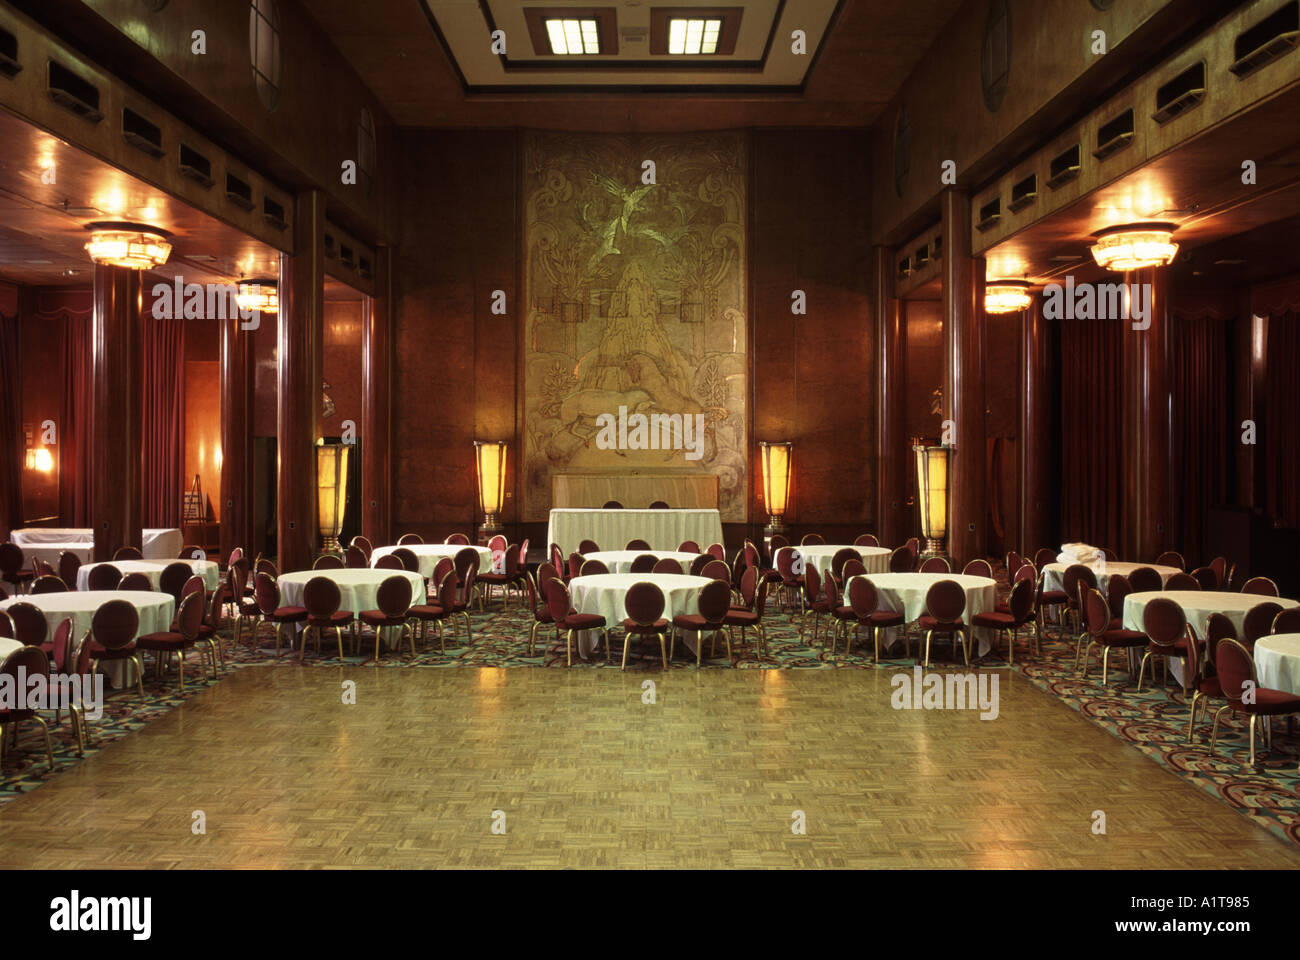 Grand Salon Grand Salon Queen Mary Long Beach Los Angeles California Usa Stock